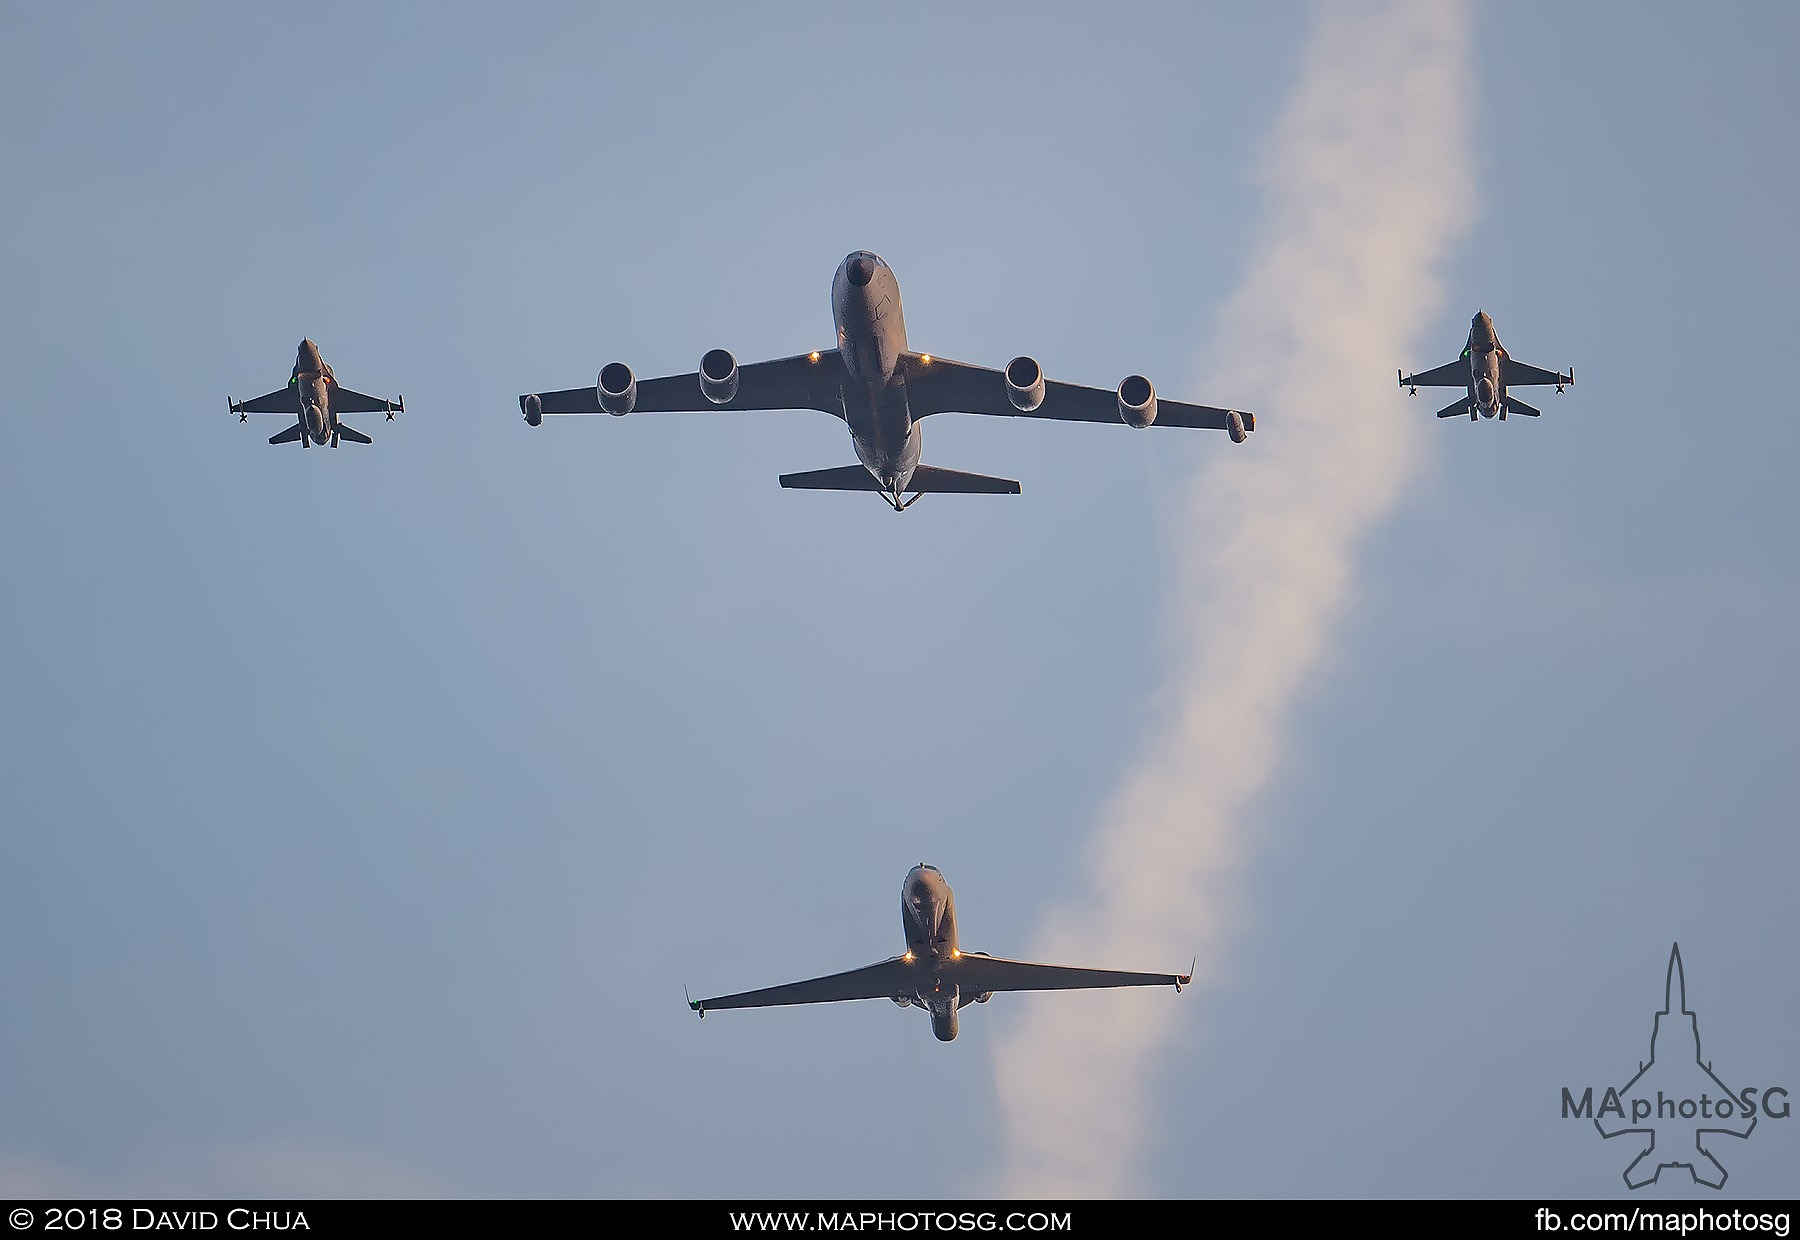 27. KC-135R Stratotanker escorted by to F-16C Vipers followed by a Gulfstream G550 CAEWS.